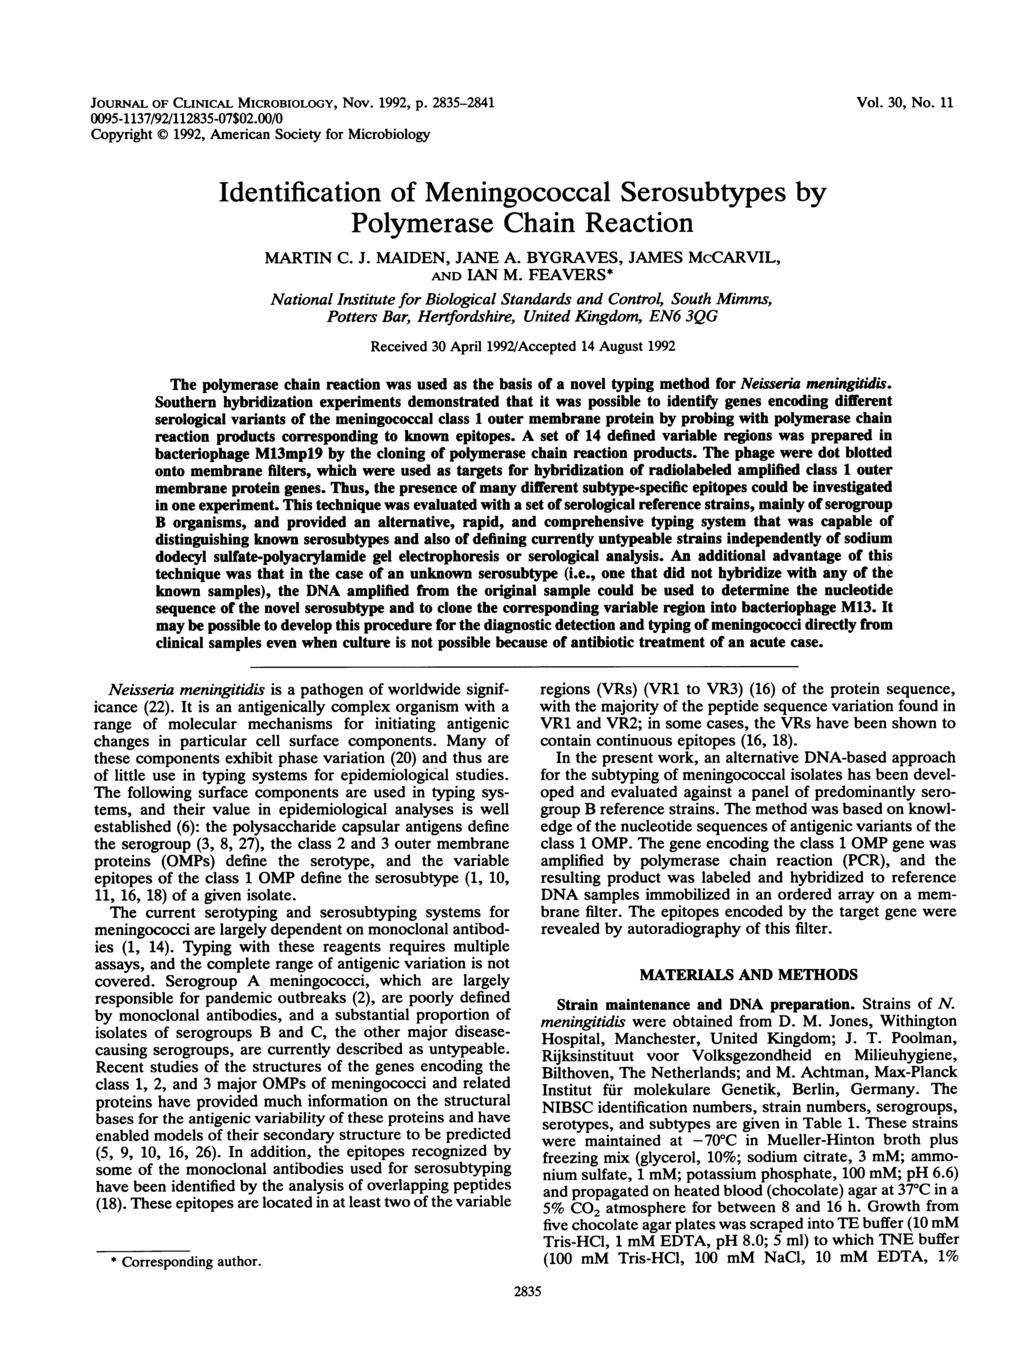 JOURNAL OF CLINICAL MICROBIOLOGY, Nov. 1992, p. 2835-2841 0095-1137/92/112835-07$02.00/0 Copyright X 1992, American Society for Microbiology Vol. 30, No.